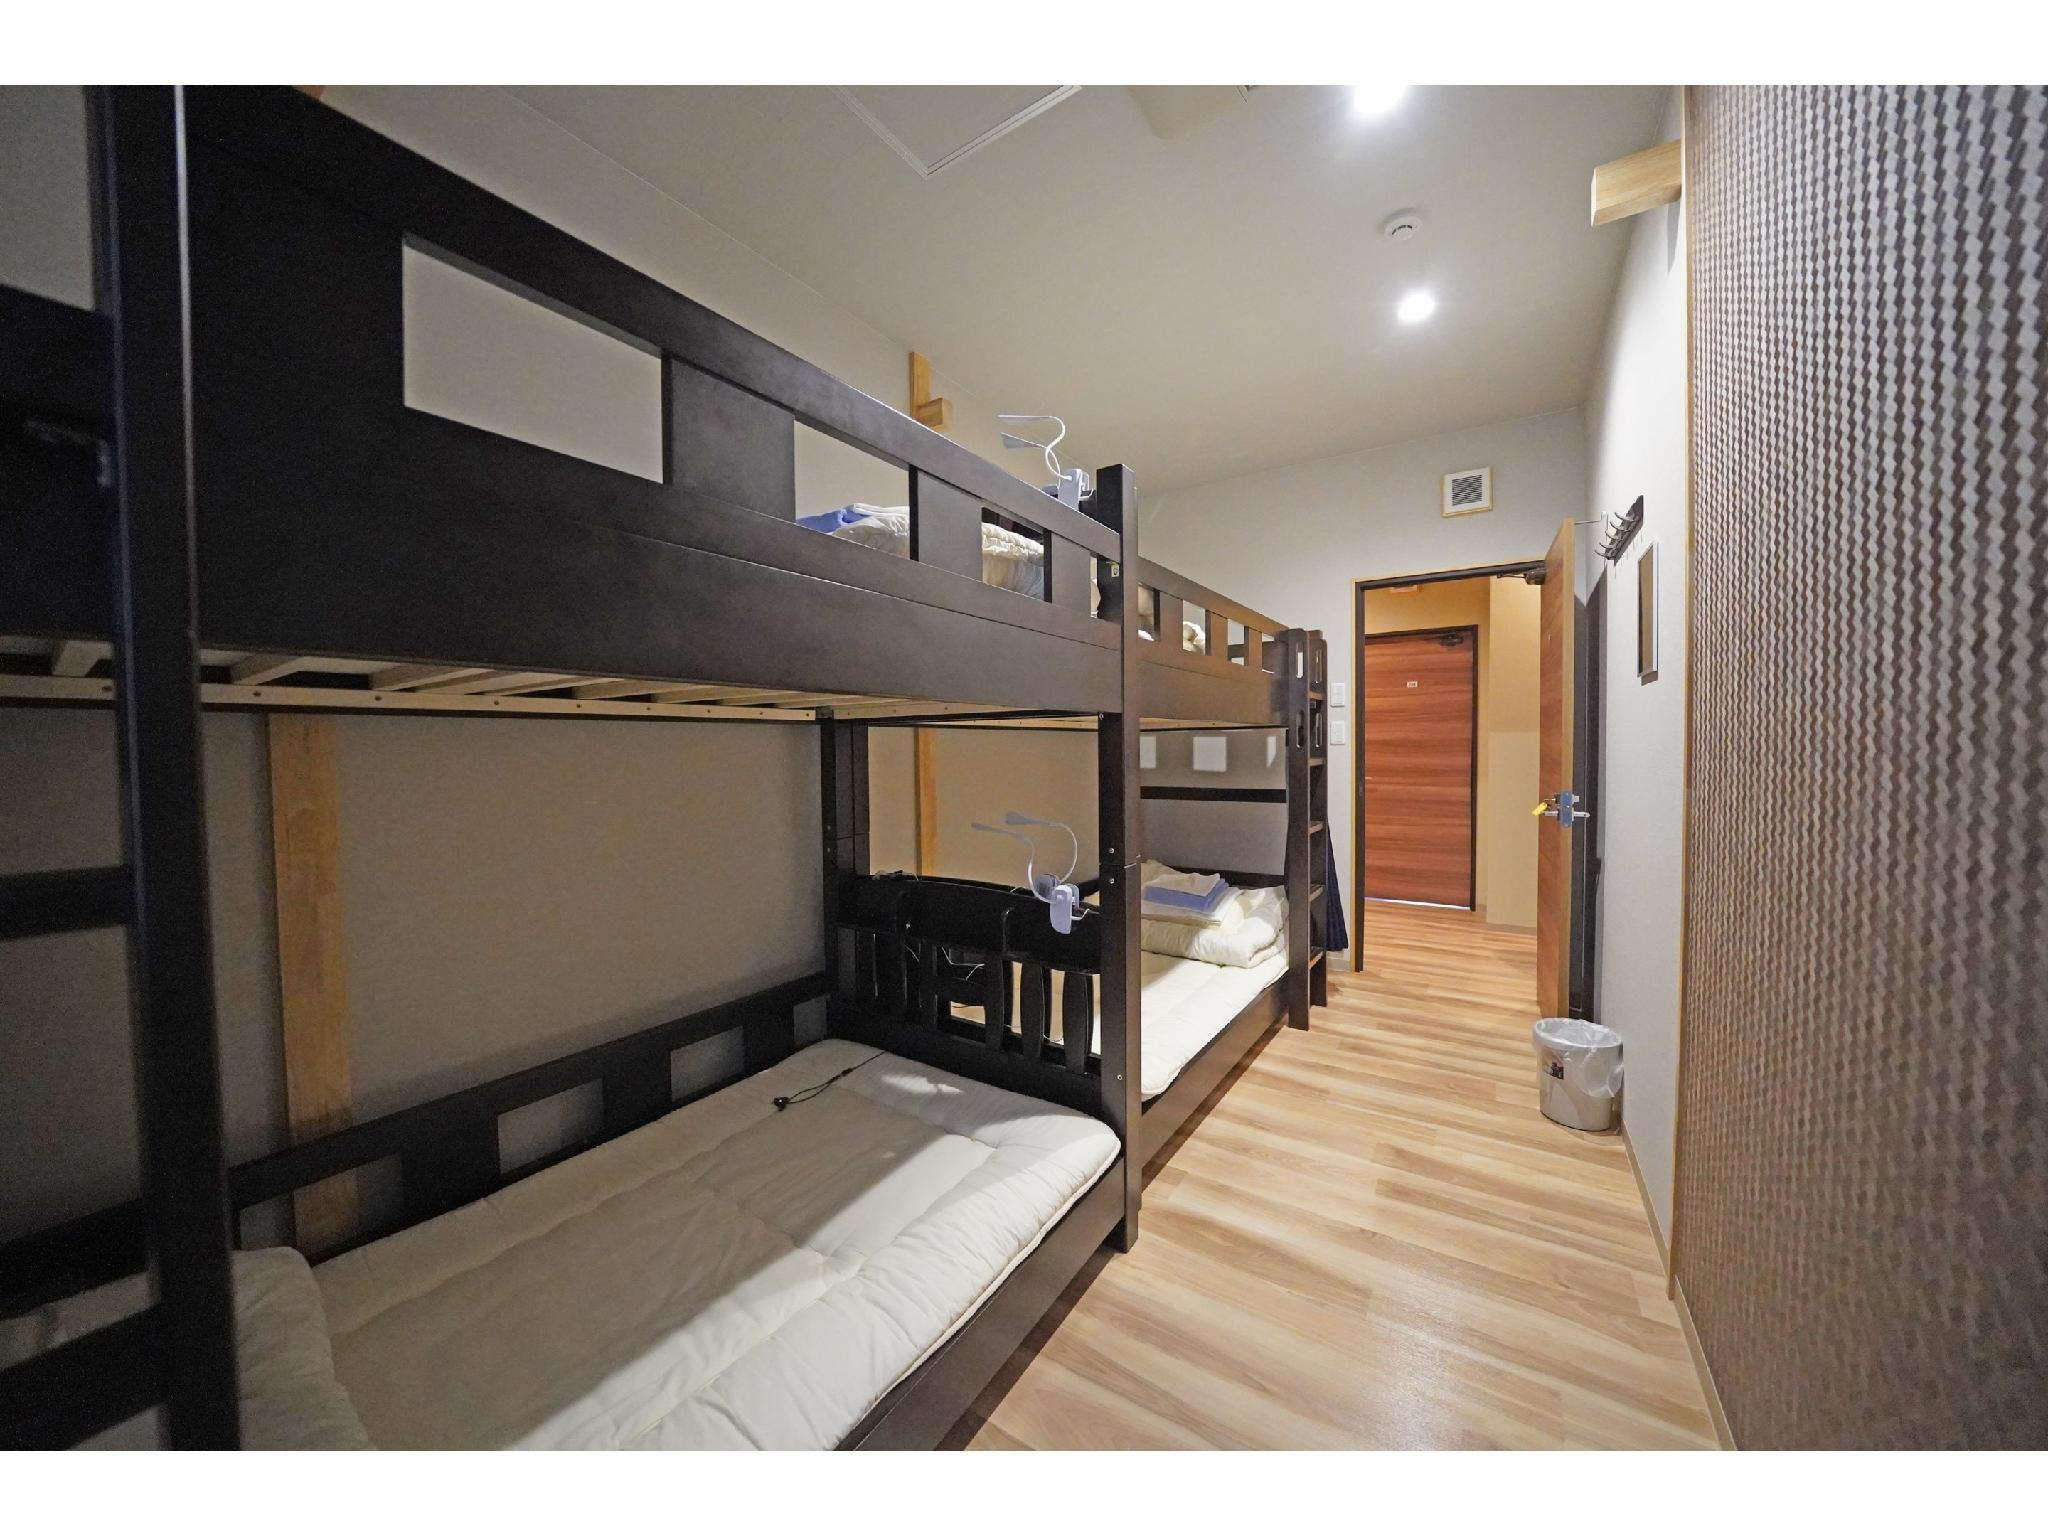 包租房(雙層床/四人房) (Private 4-Person Room (Bunk Beds))